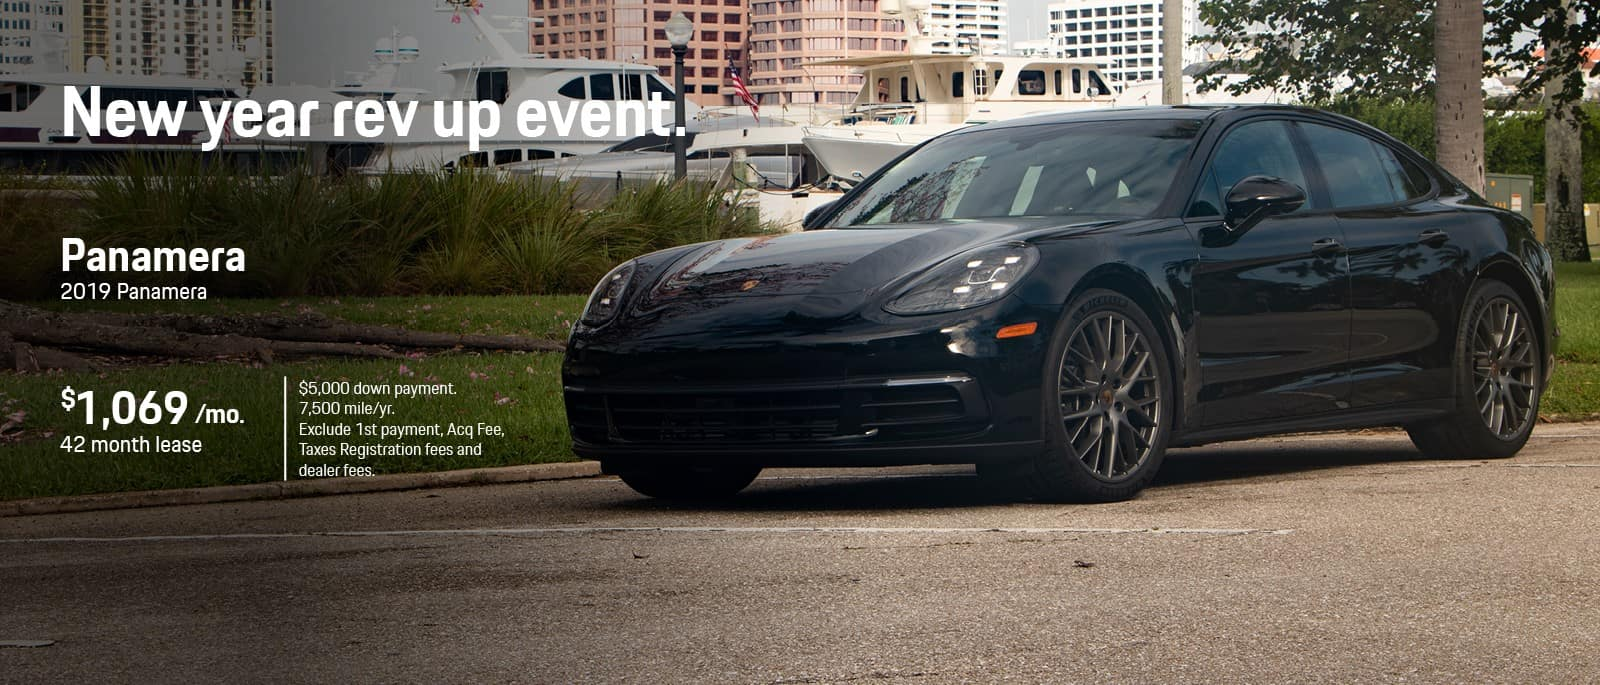 Porsche Panamera New Year Lease Special